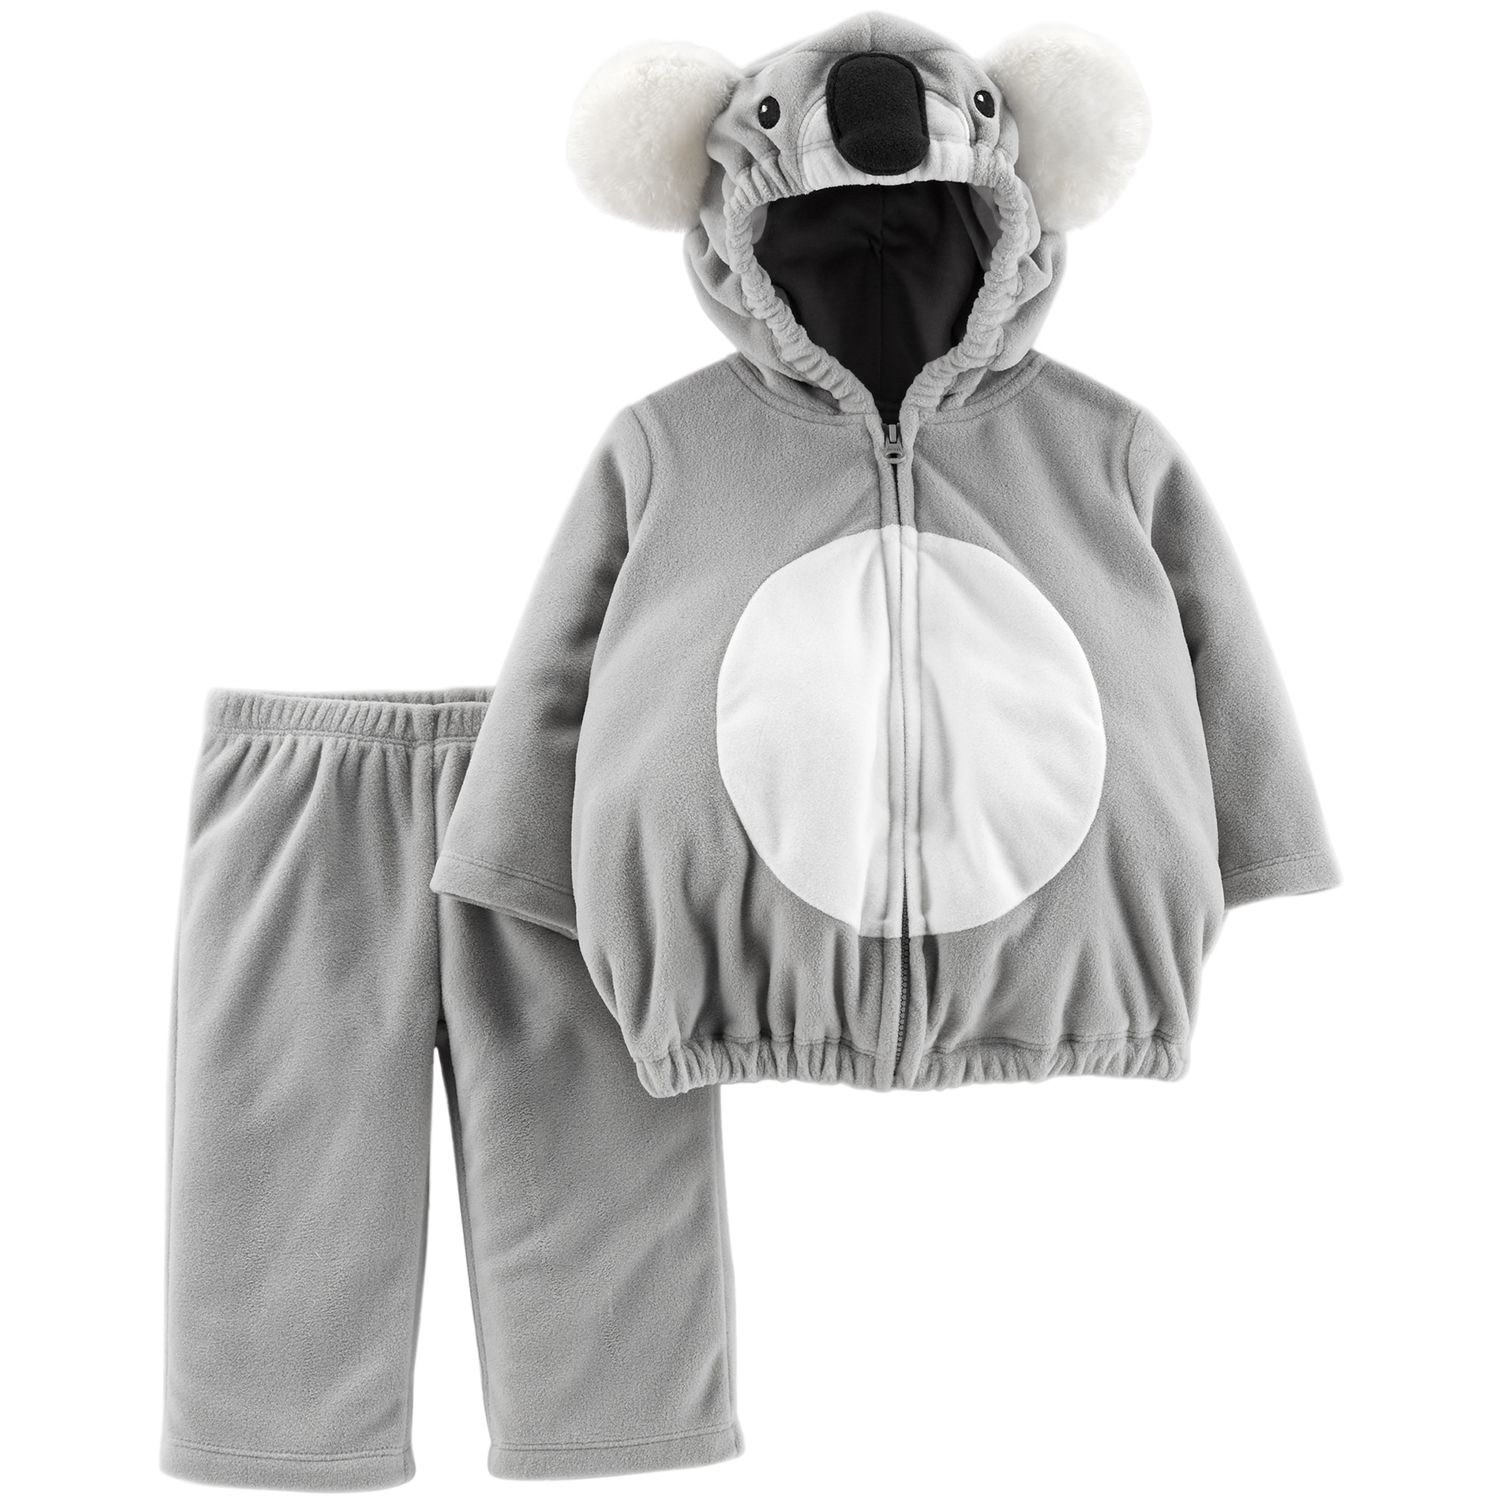 sc 1 st  Kohlu0027s & Baby Carteru0027s Little Koala Halloween Costume